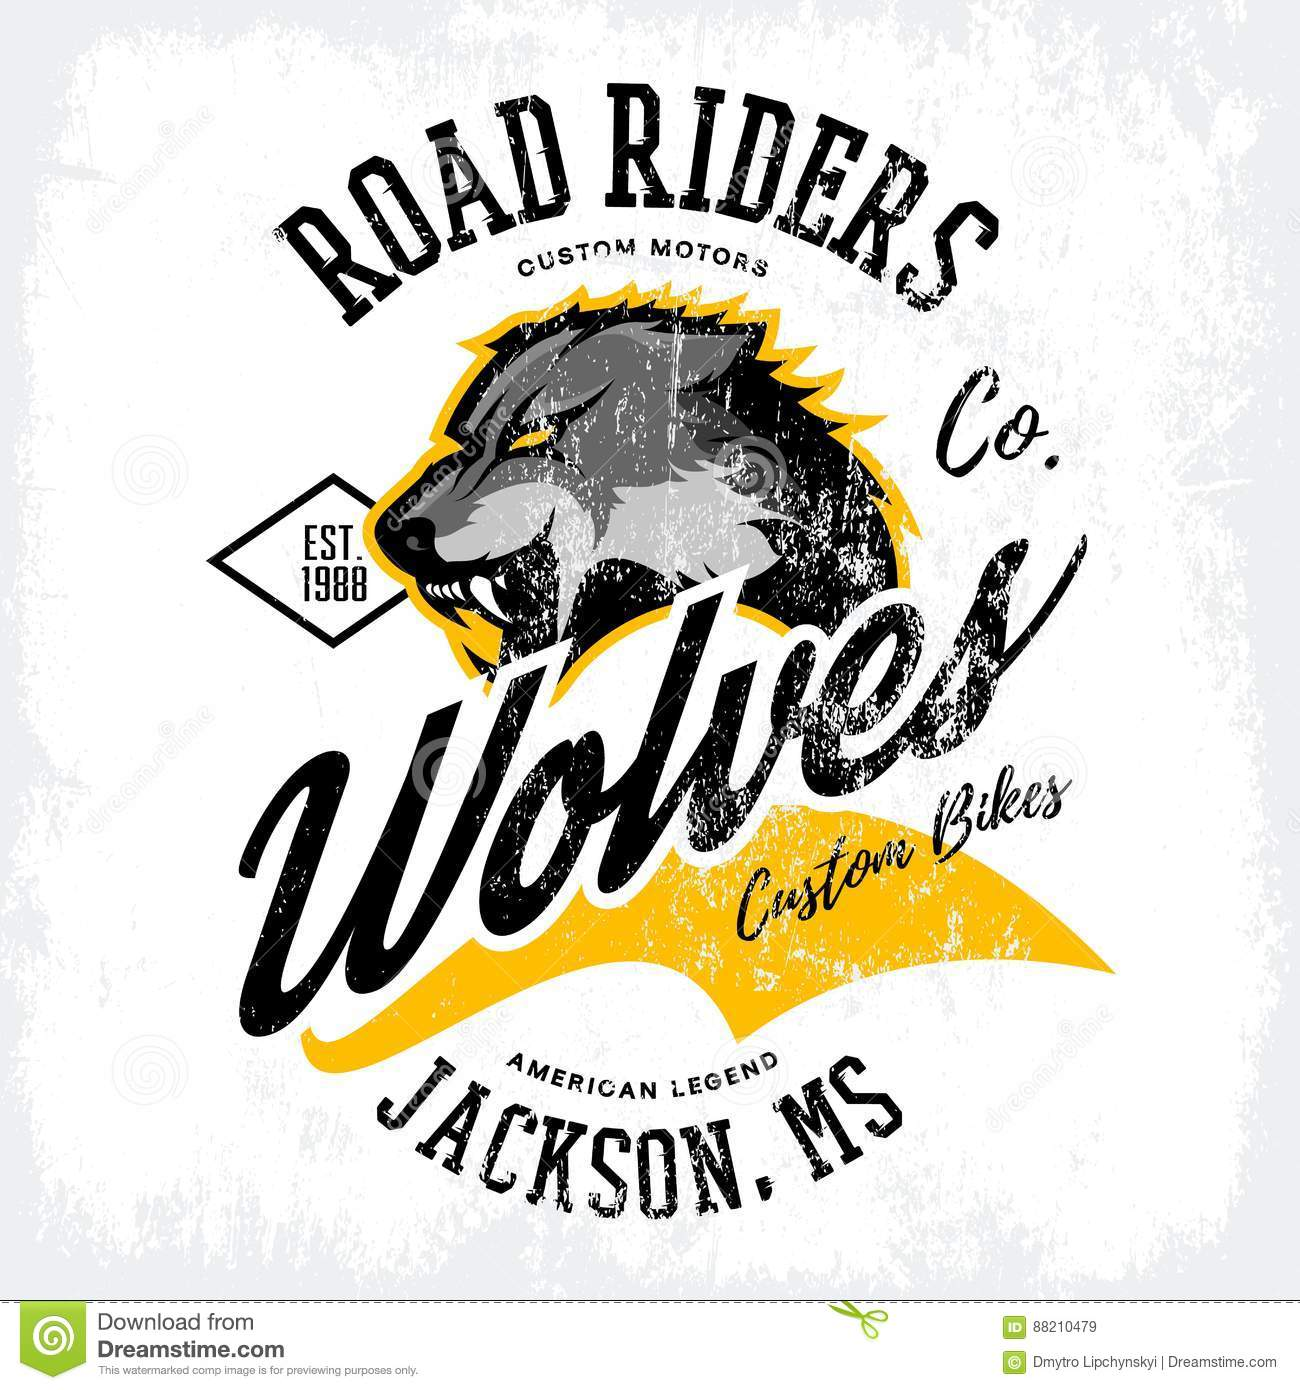 T shirt design jackson ms - Vintage American Furious Wolf Bikers Club Tee Print Vector Design Isolated On White T Shirt